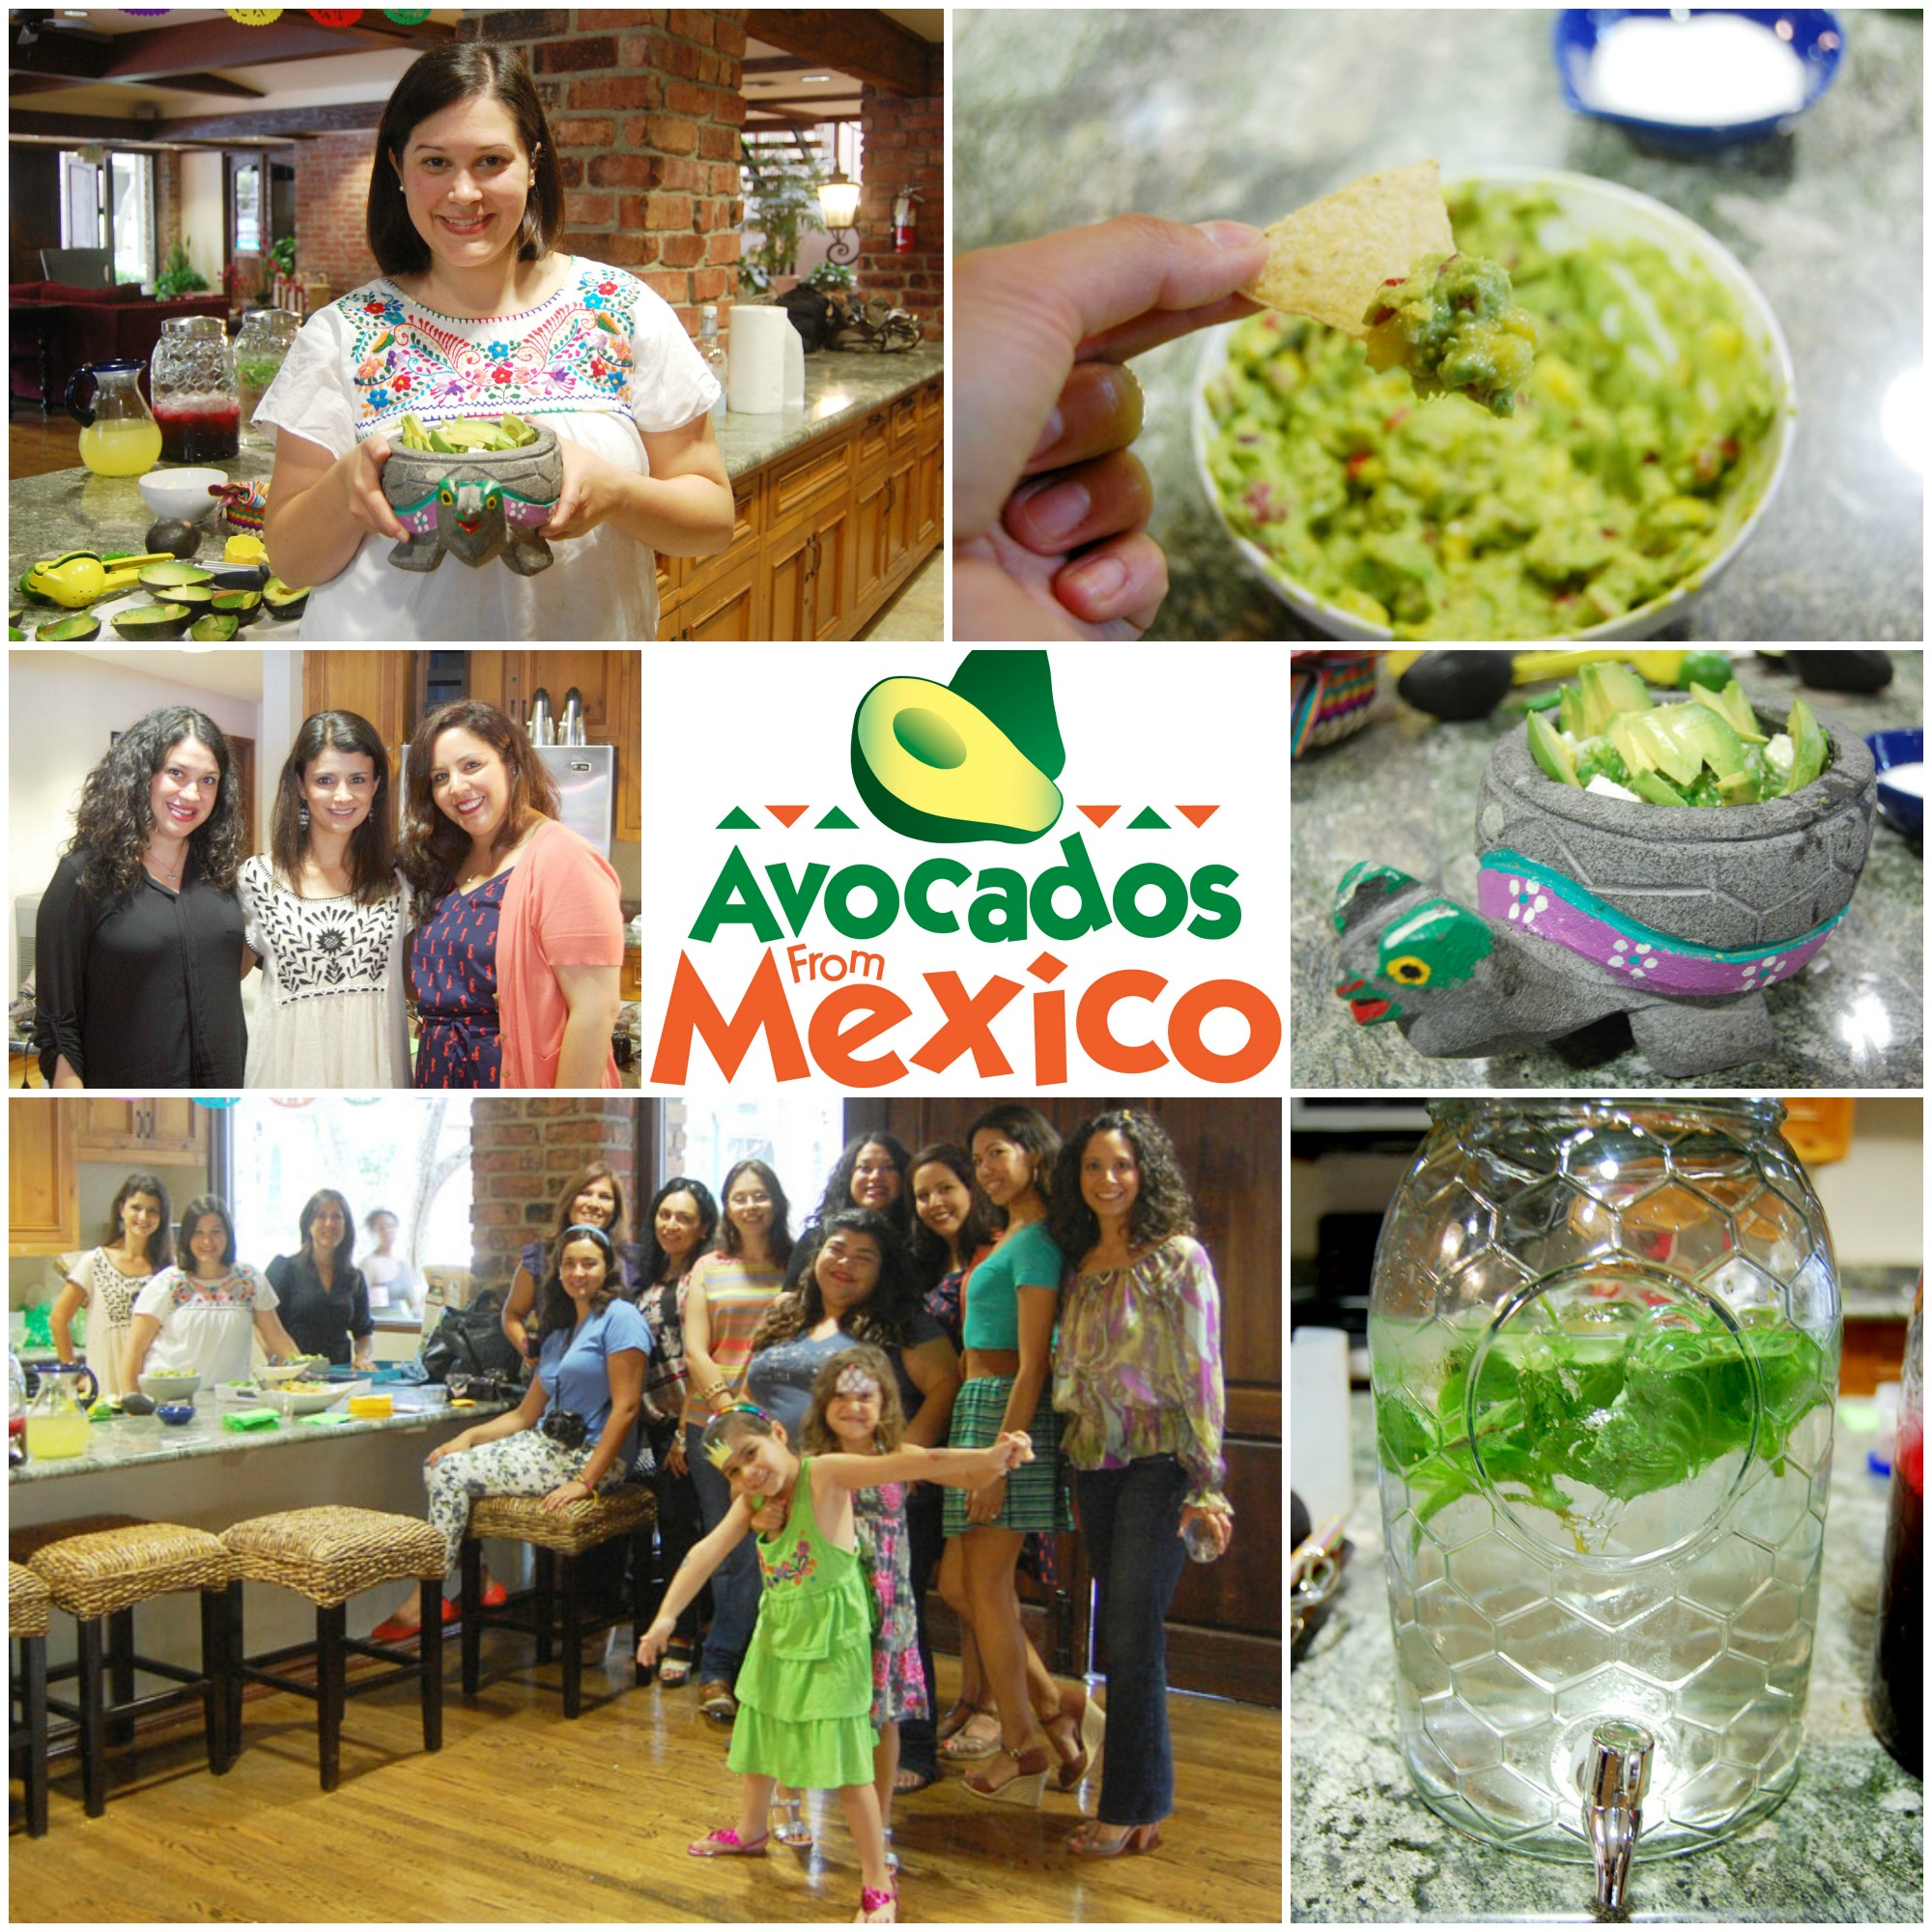 #LatinaBloggers Acovados from Mexico event